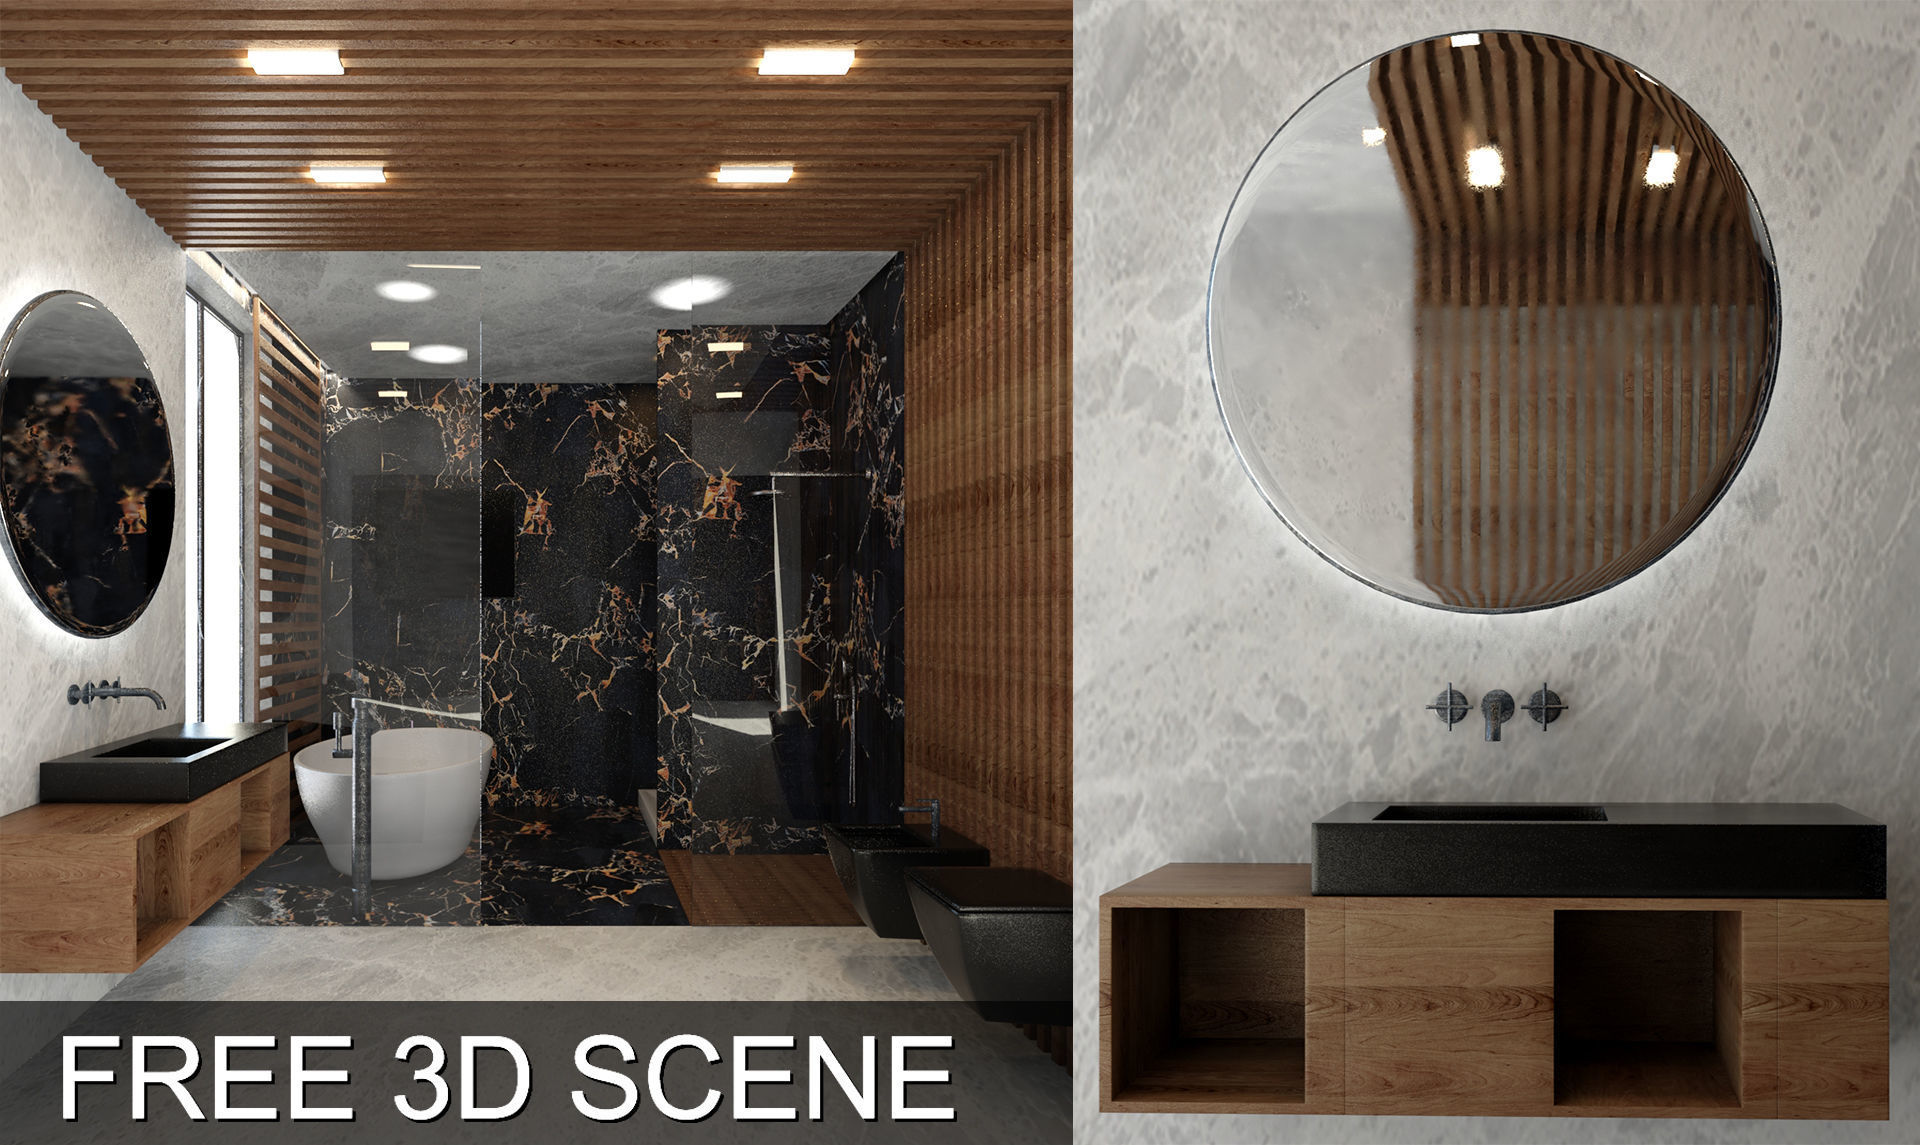 Bathroom Scene 3d Models Free Video Timelapse In The 1